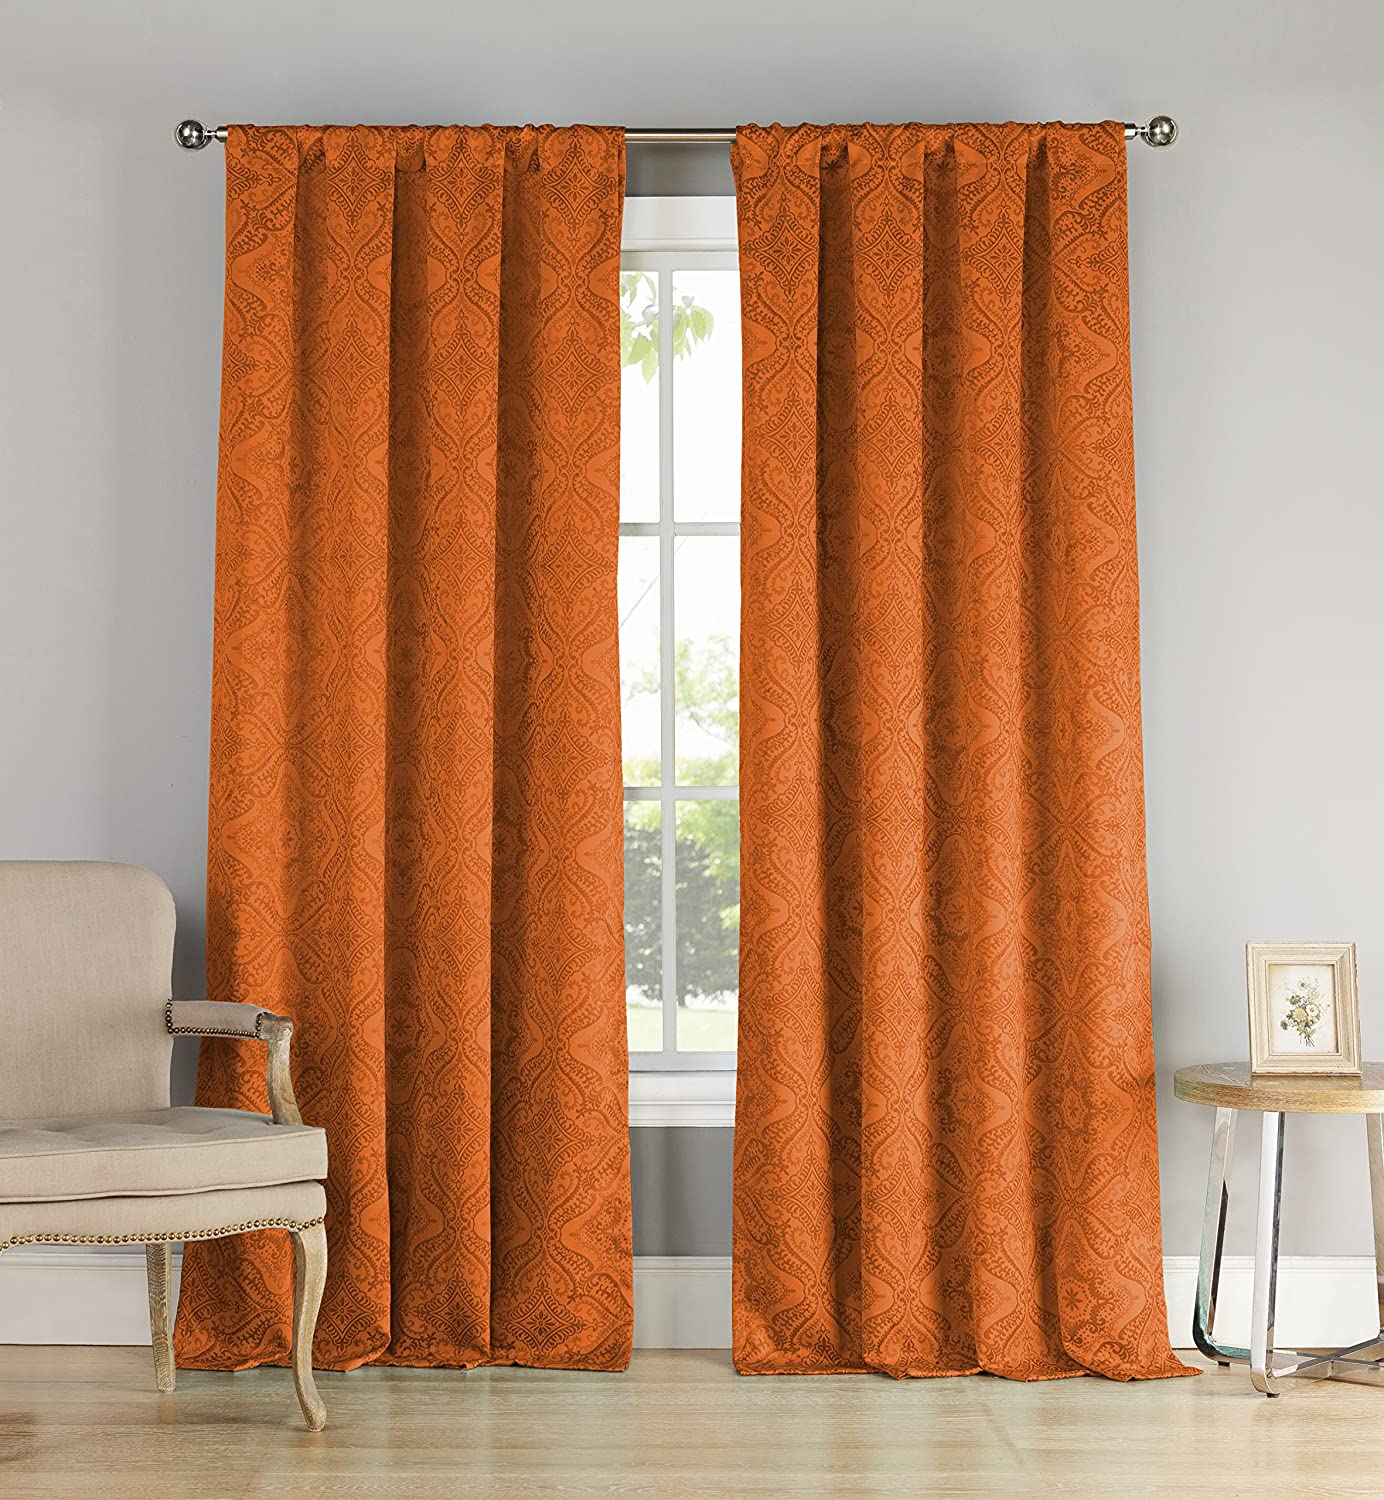 Orange And White Curtains Panels Related Posts Orange Curtains Panels X Orange Curtains Panels